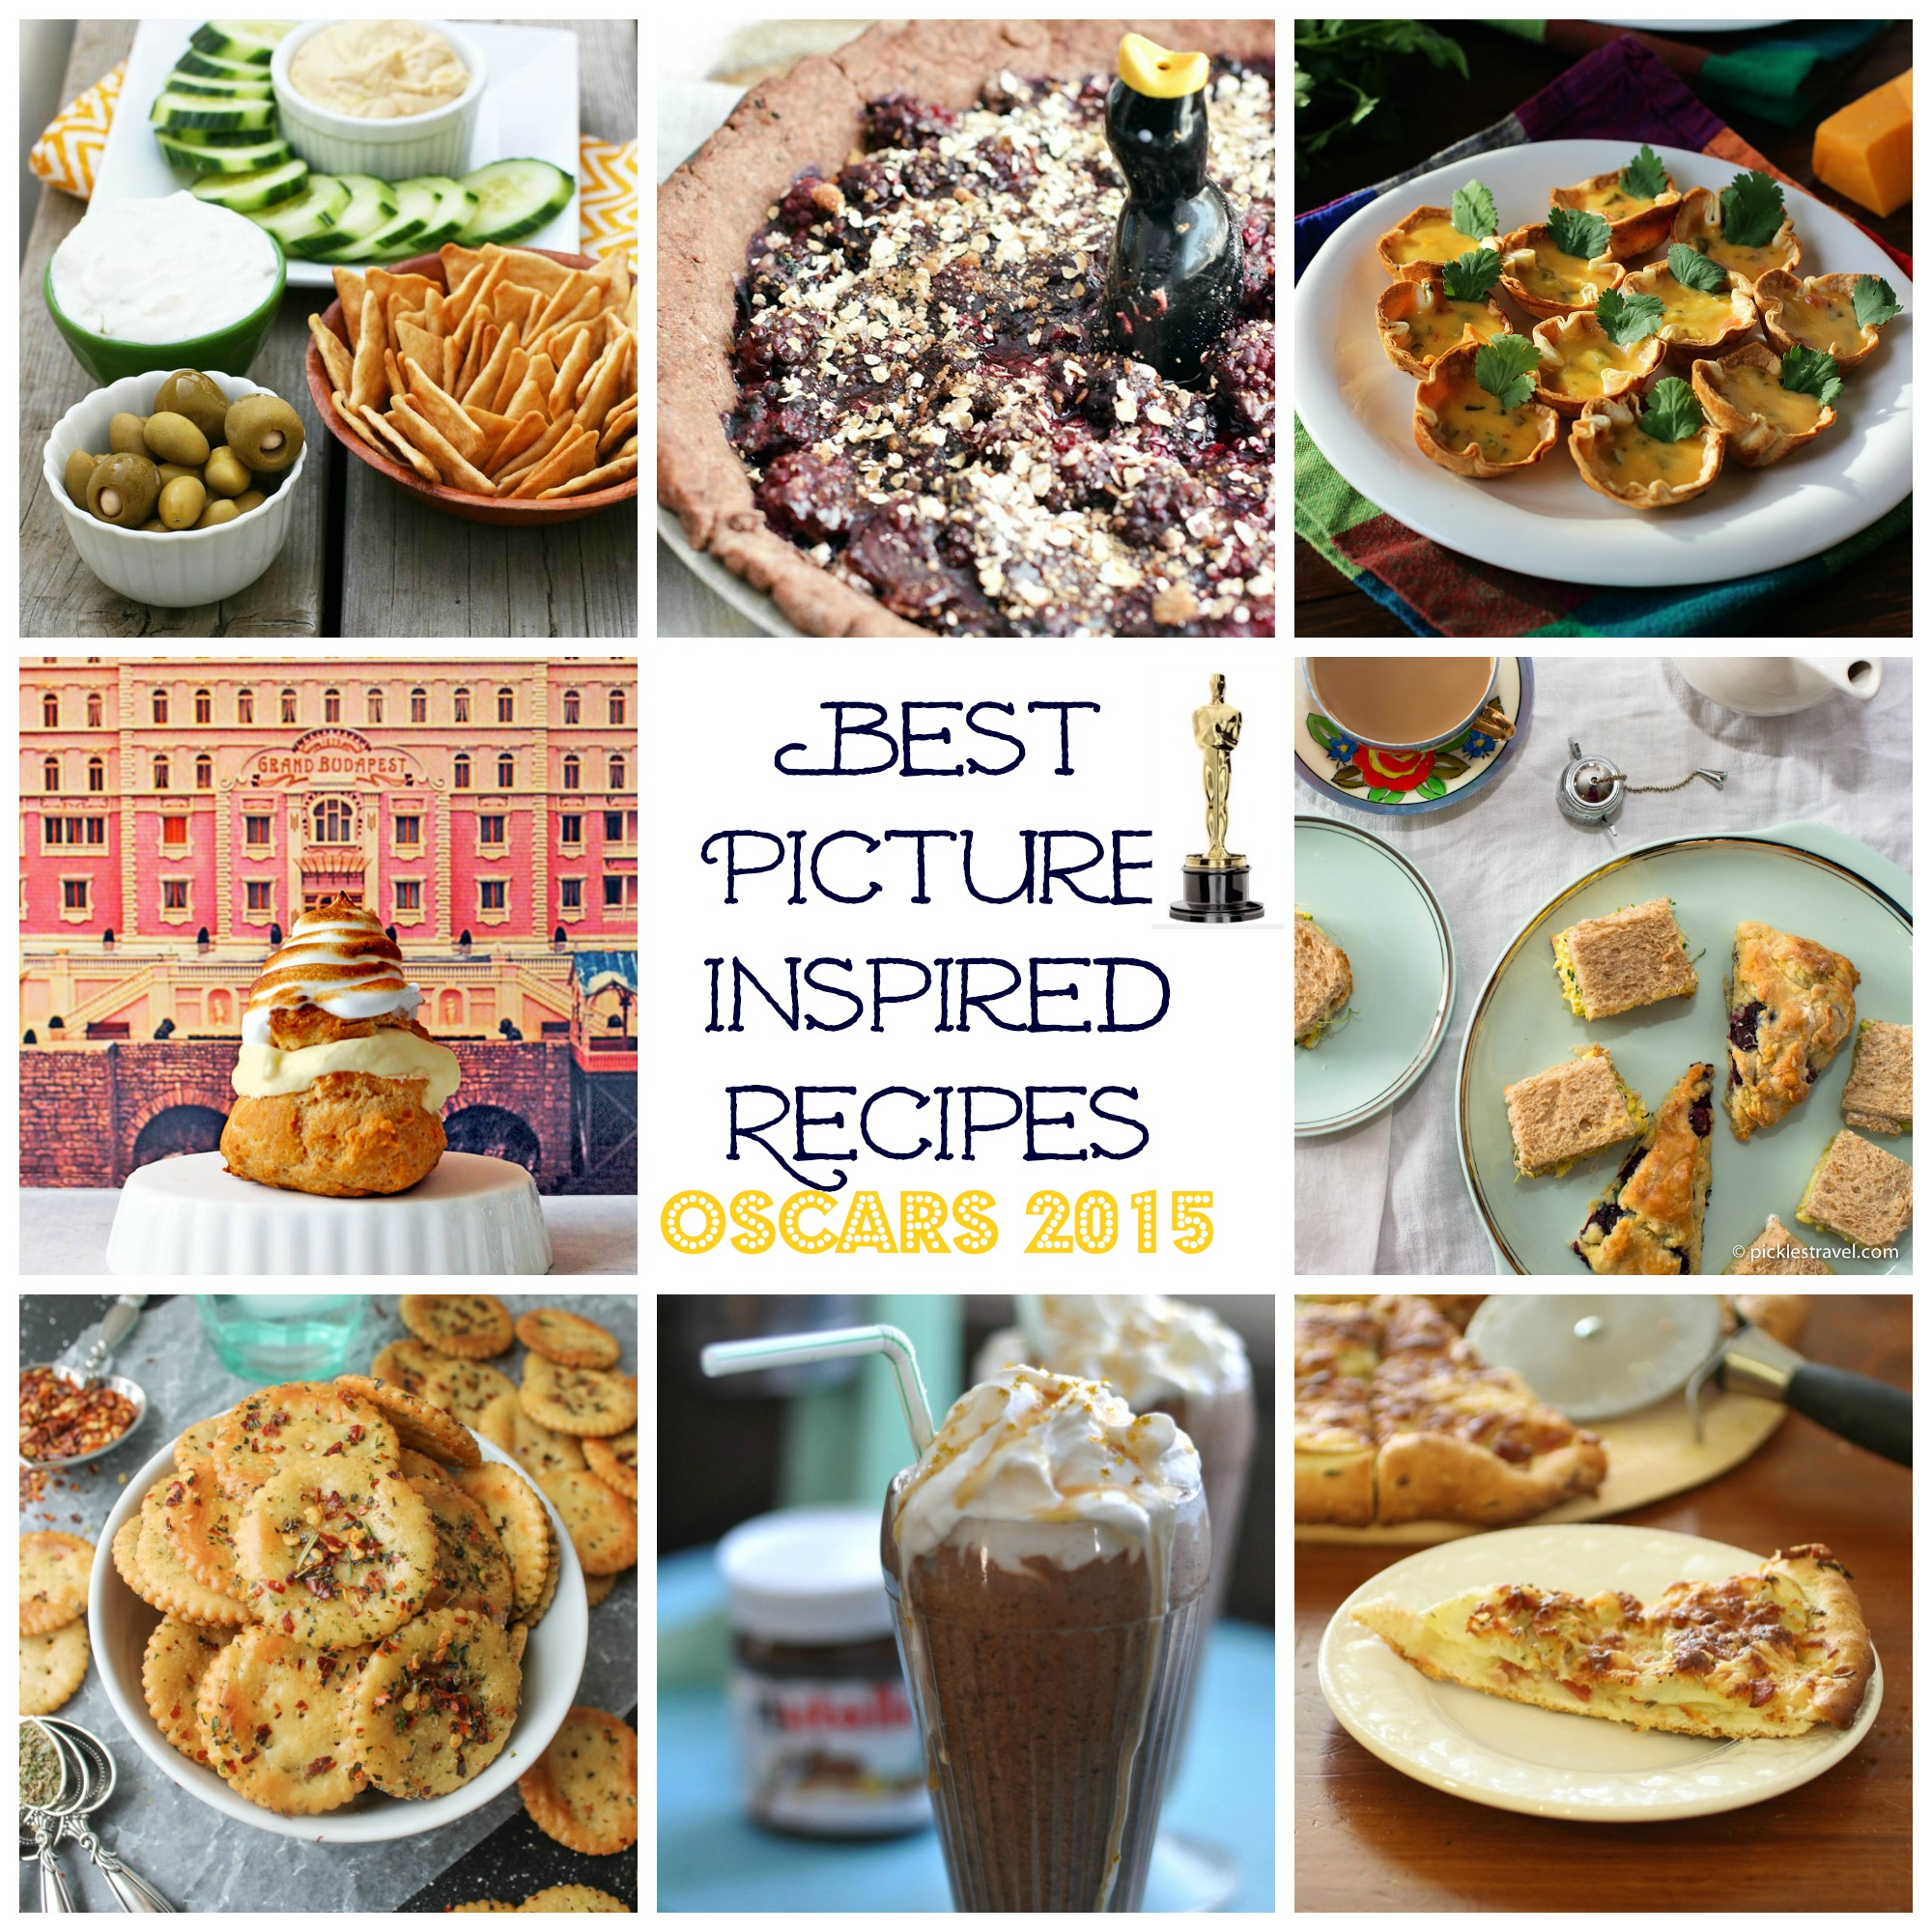 Oscars 2015 Best Picture Inspired Recipes